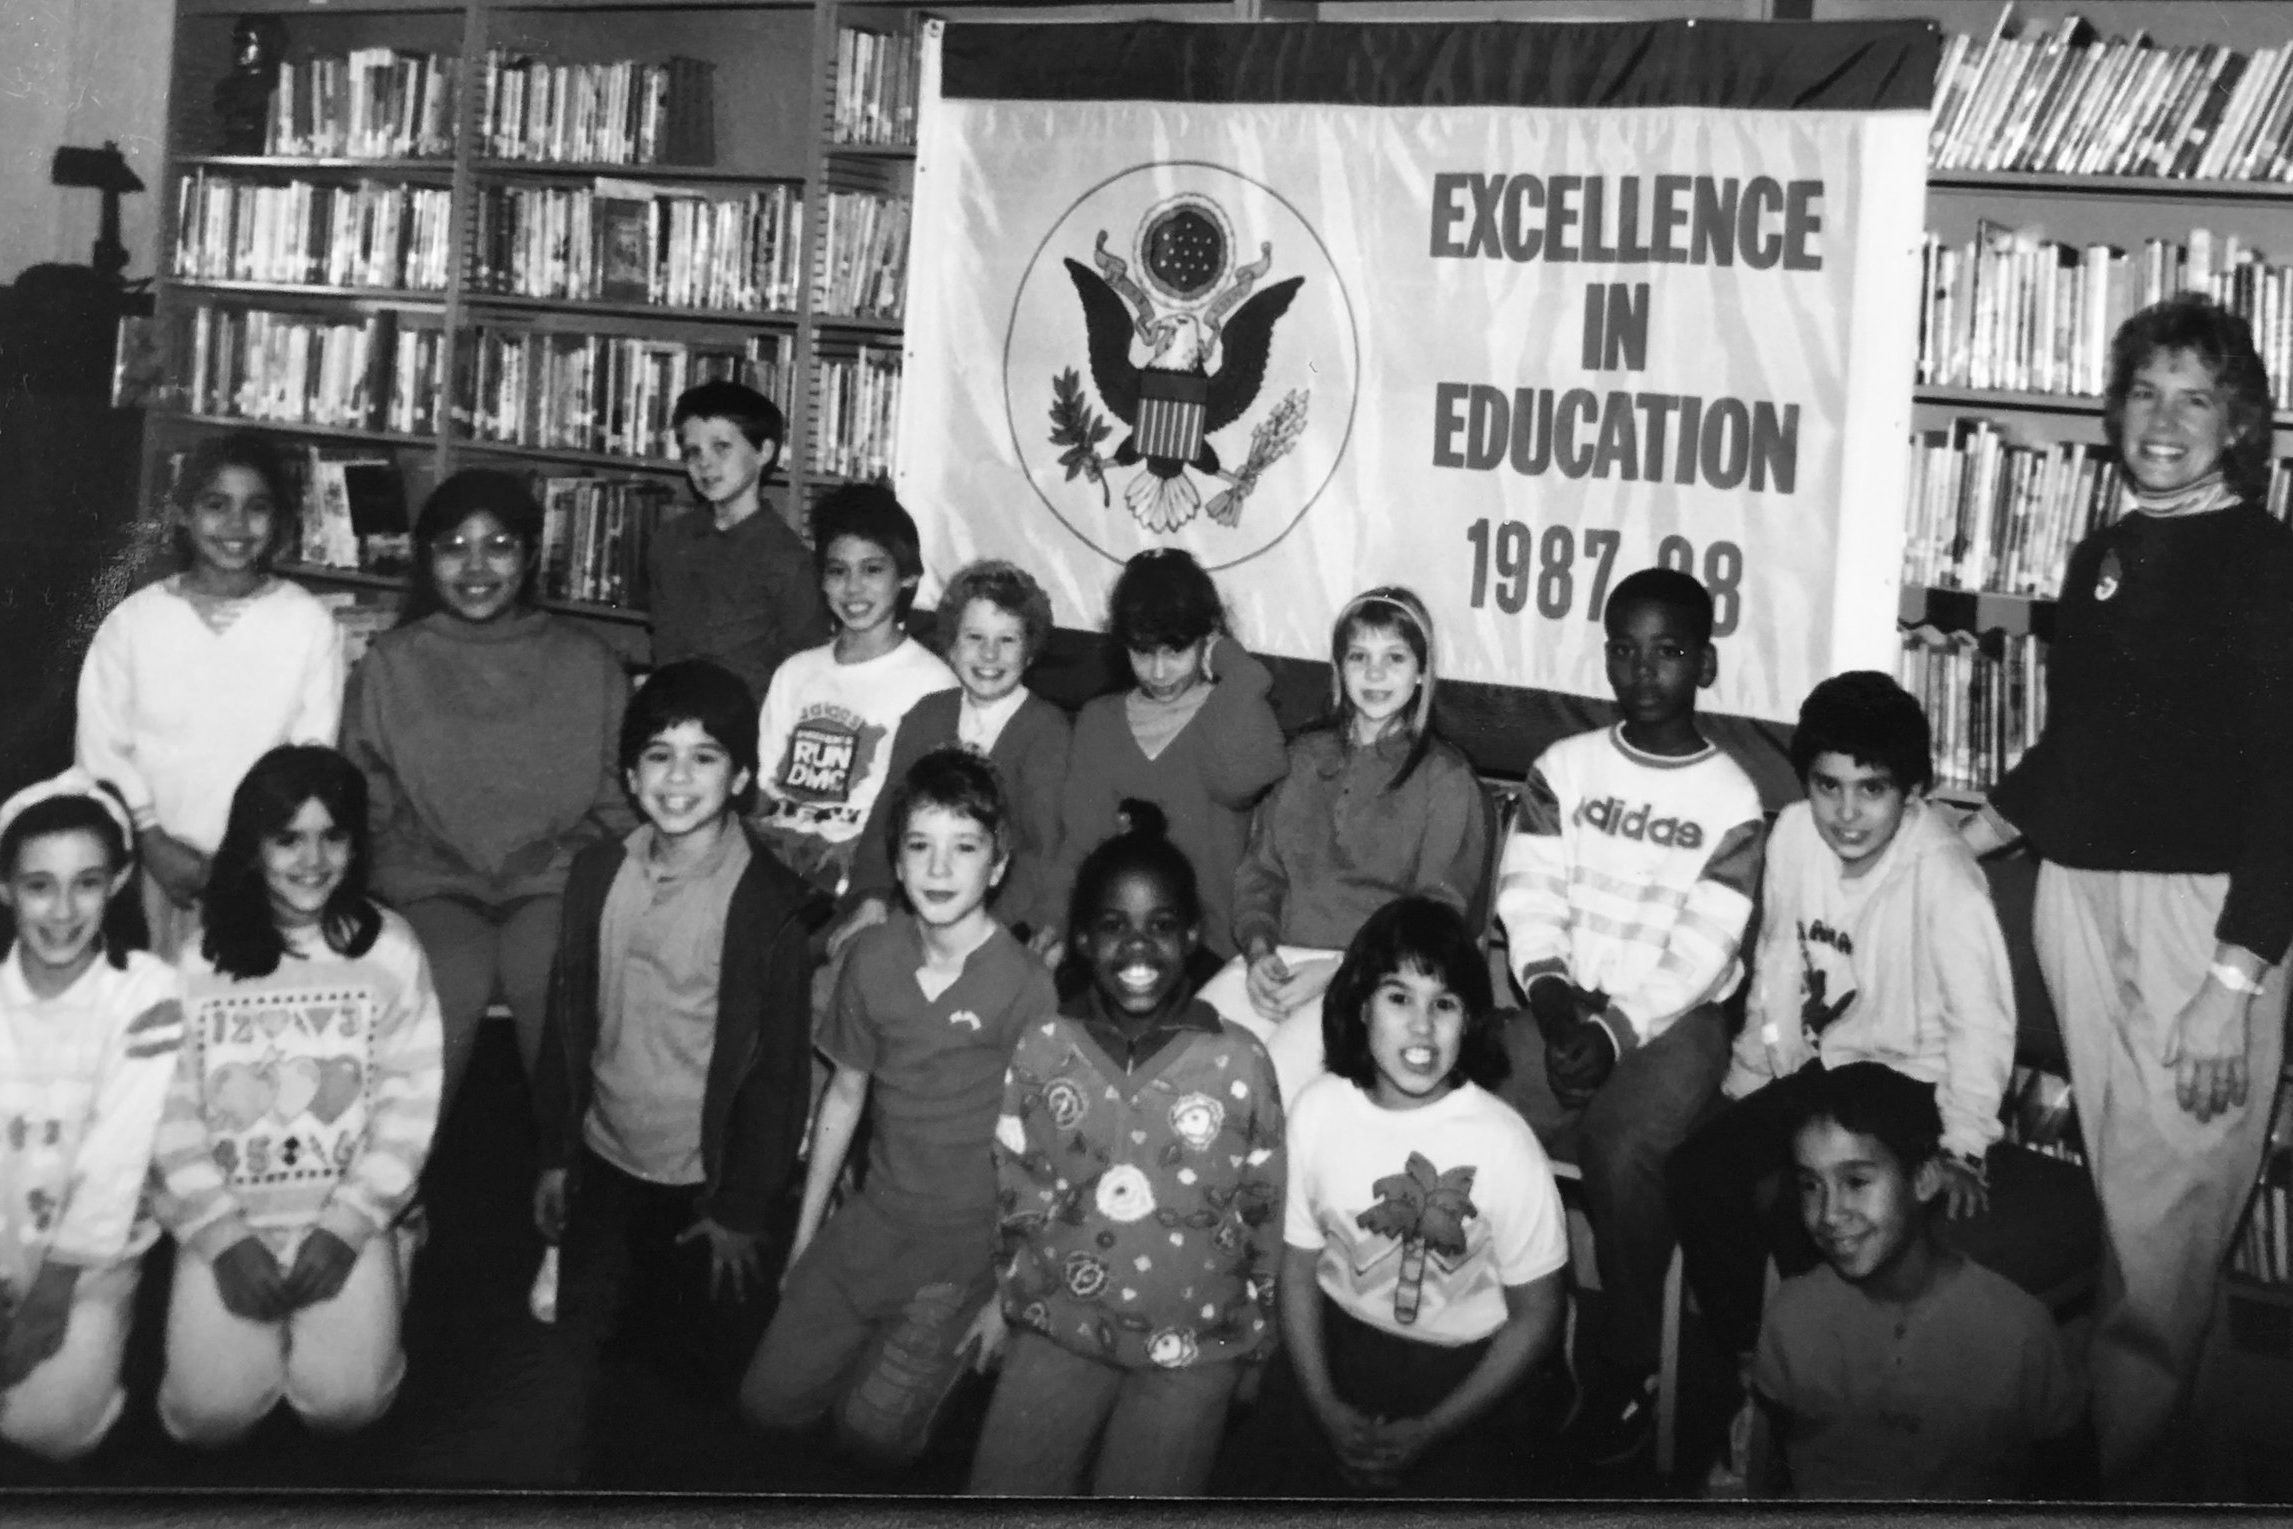 1988 - Received the Excellence in Education Award from the U.S. Department of Education, now known as the Blue Ribbon Award